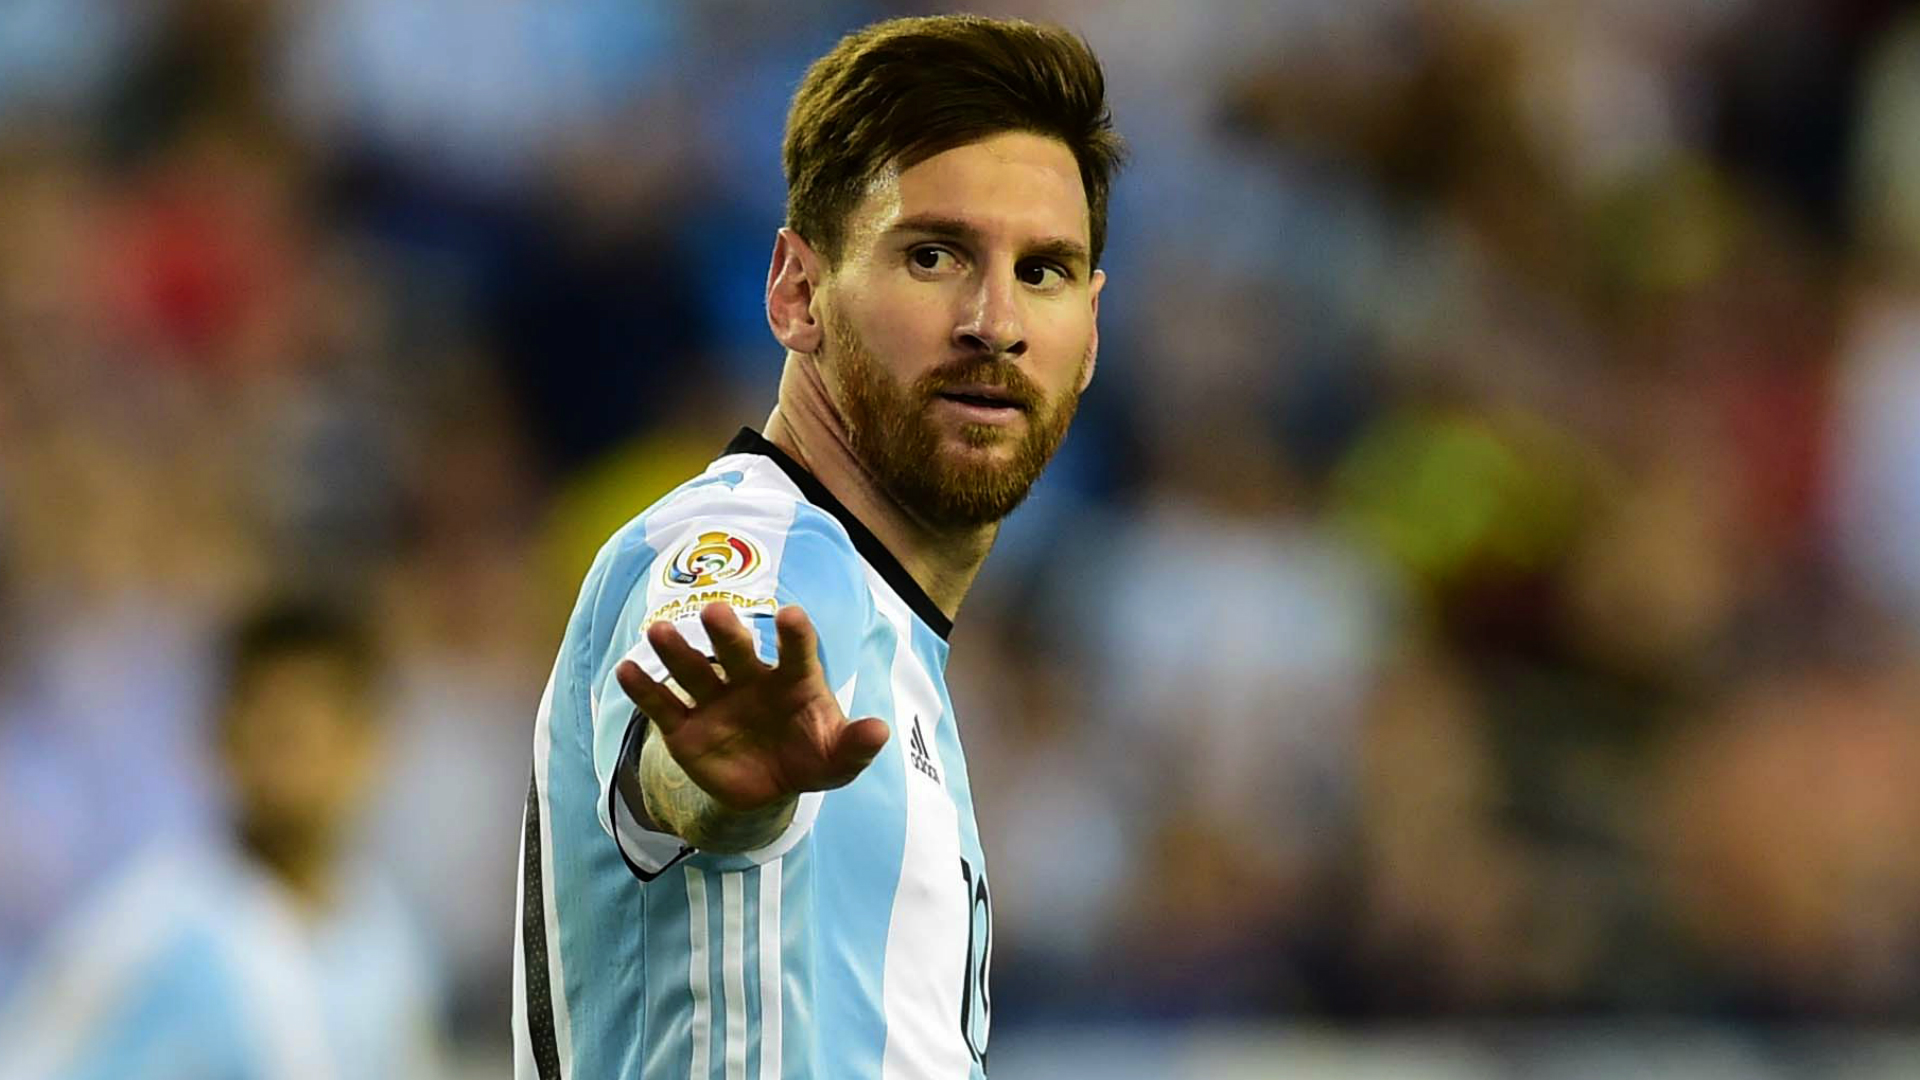 We are not scared of Messi and Argentina - Klinsmann